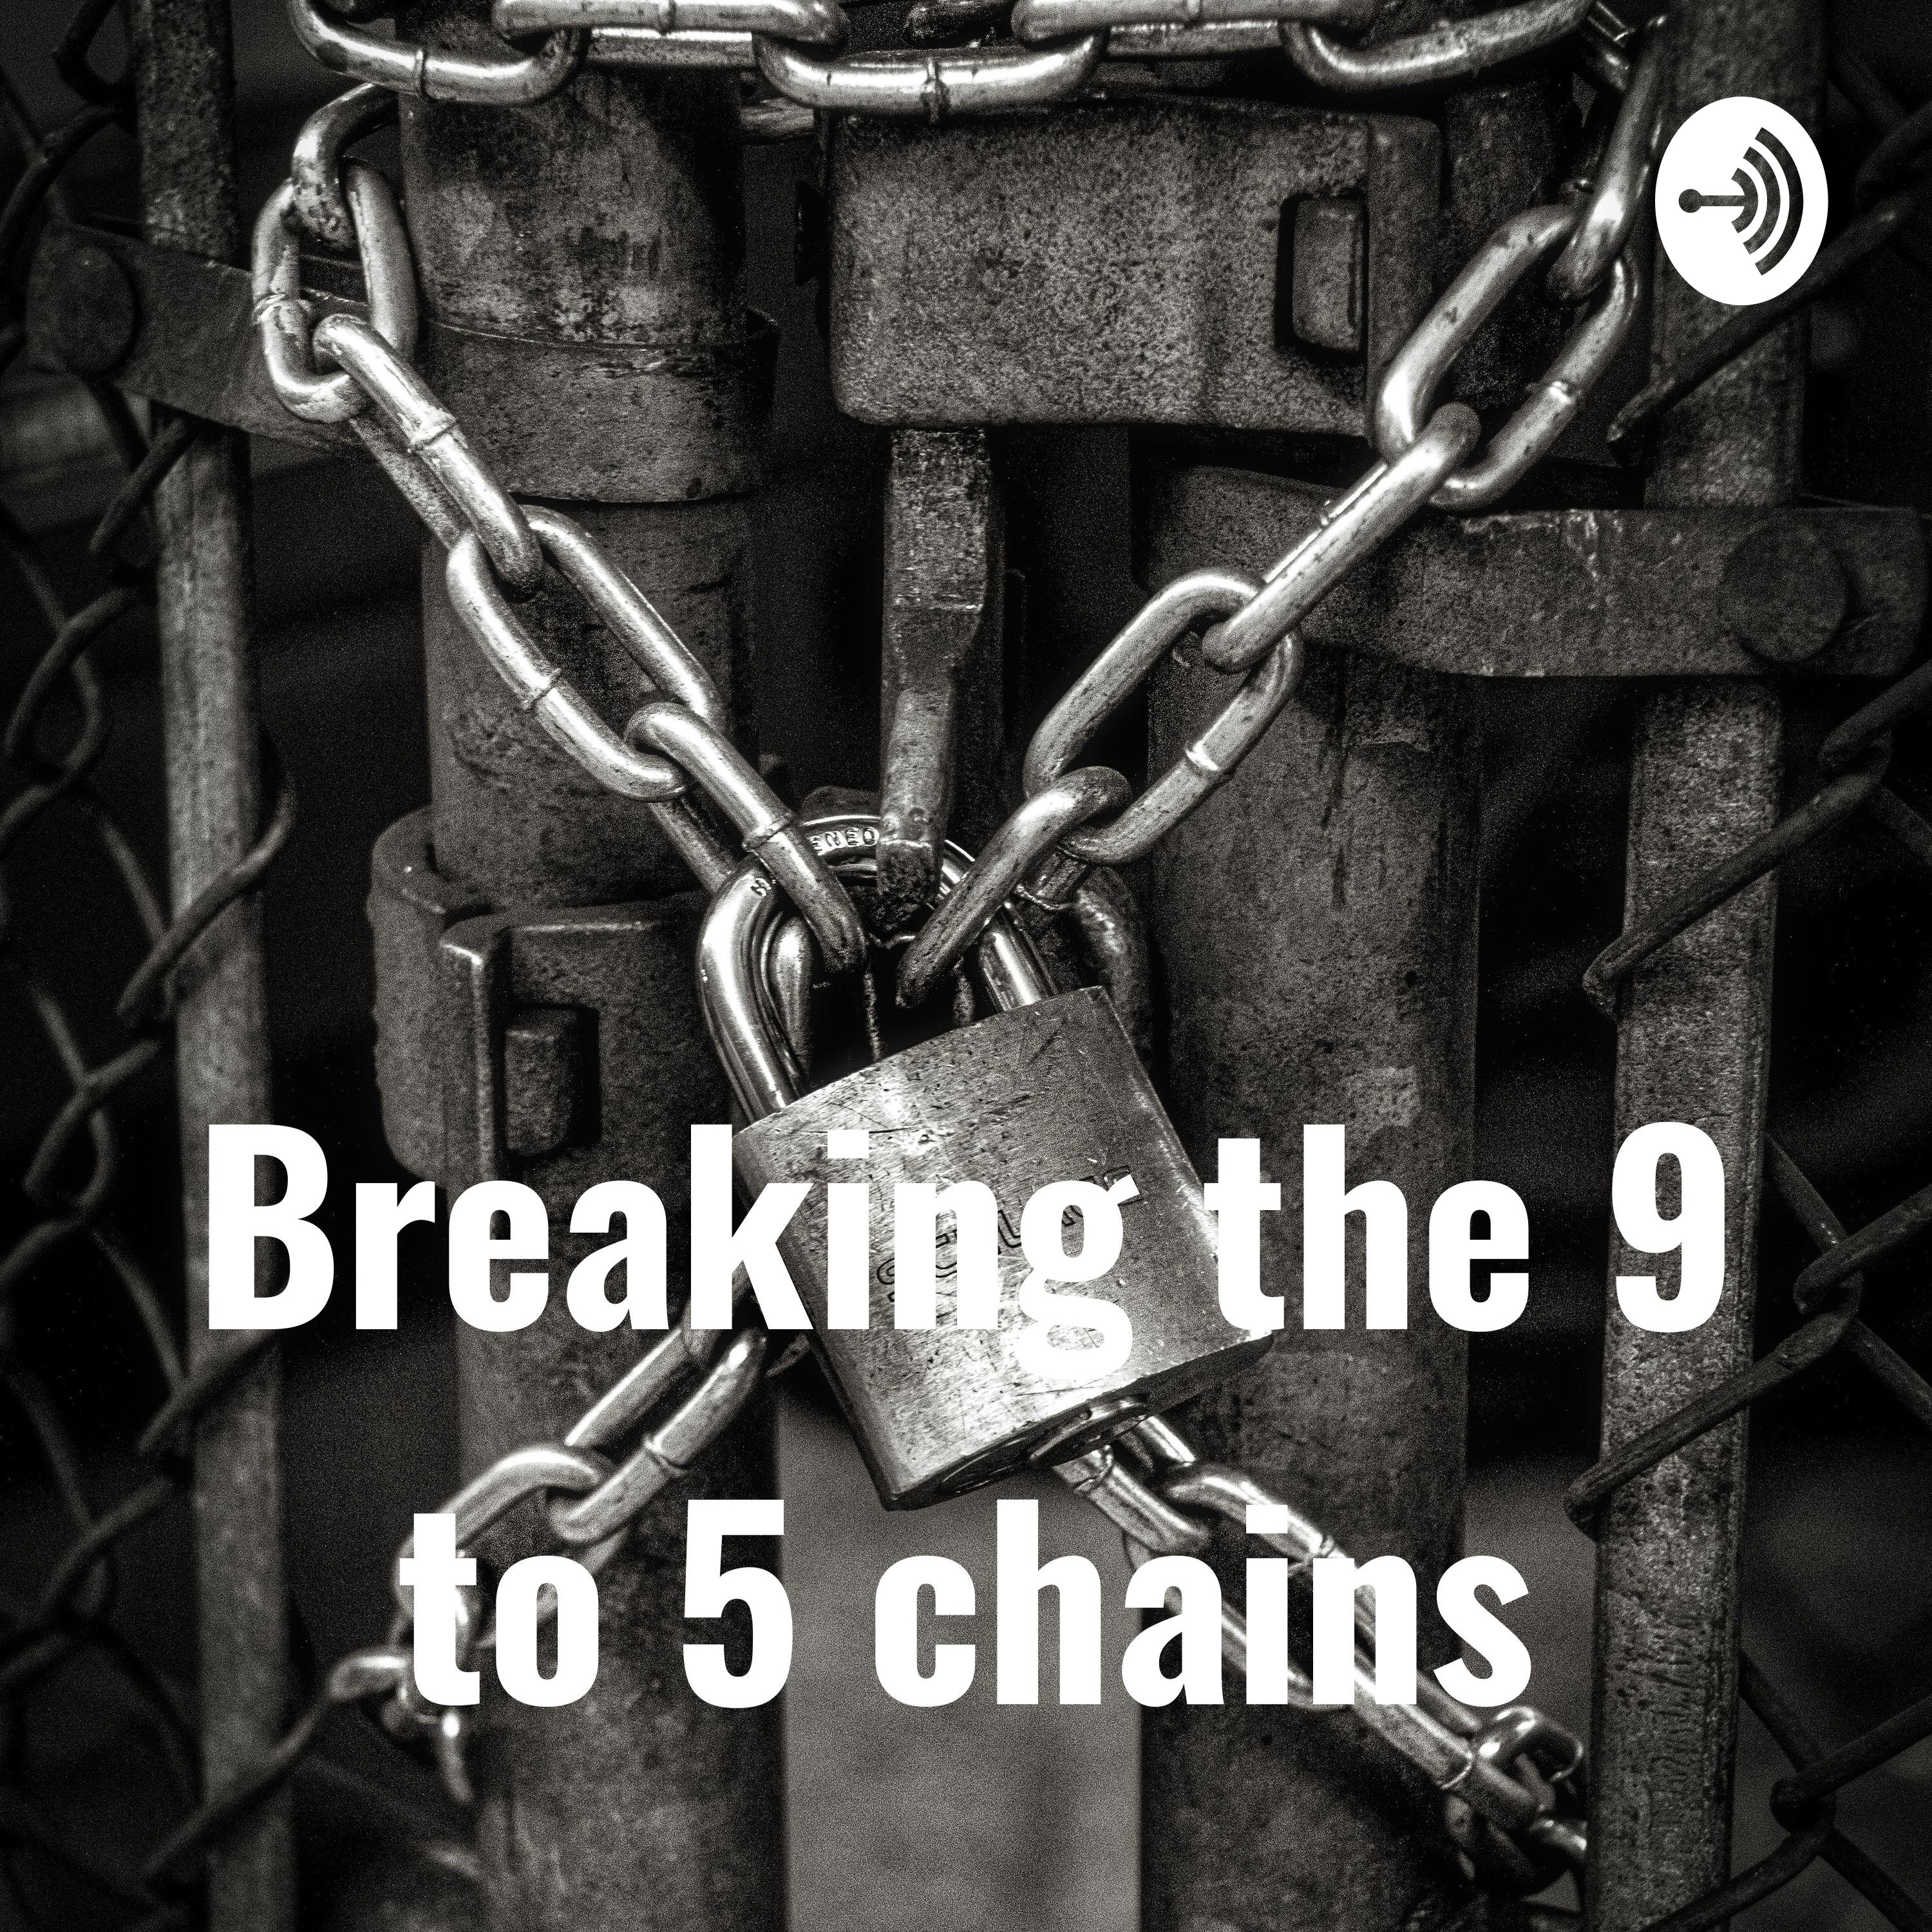 breaking the 9 to 5 chains | Listen via Stitcher for Podcasts